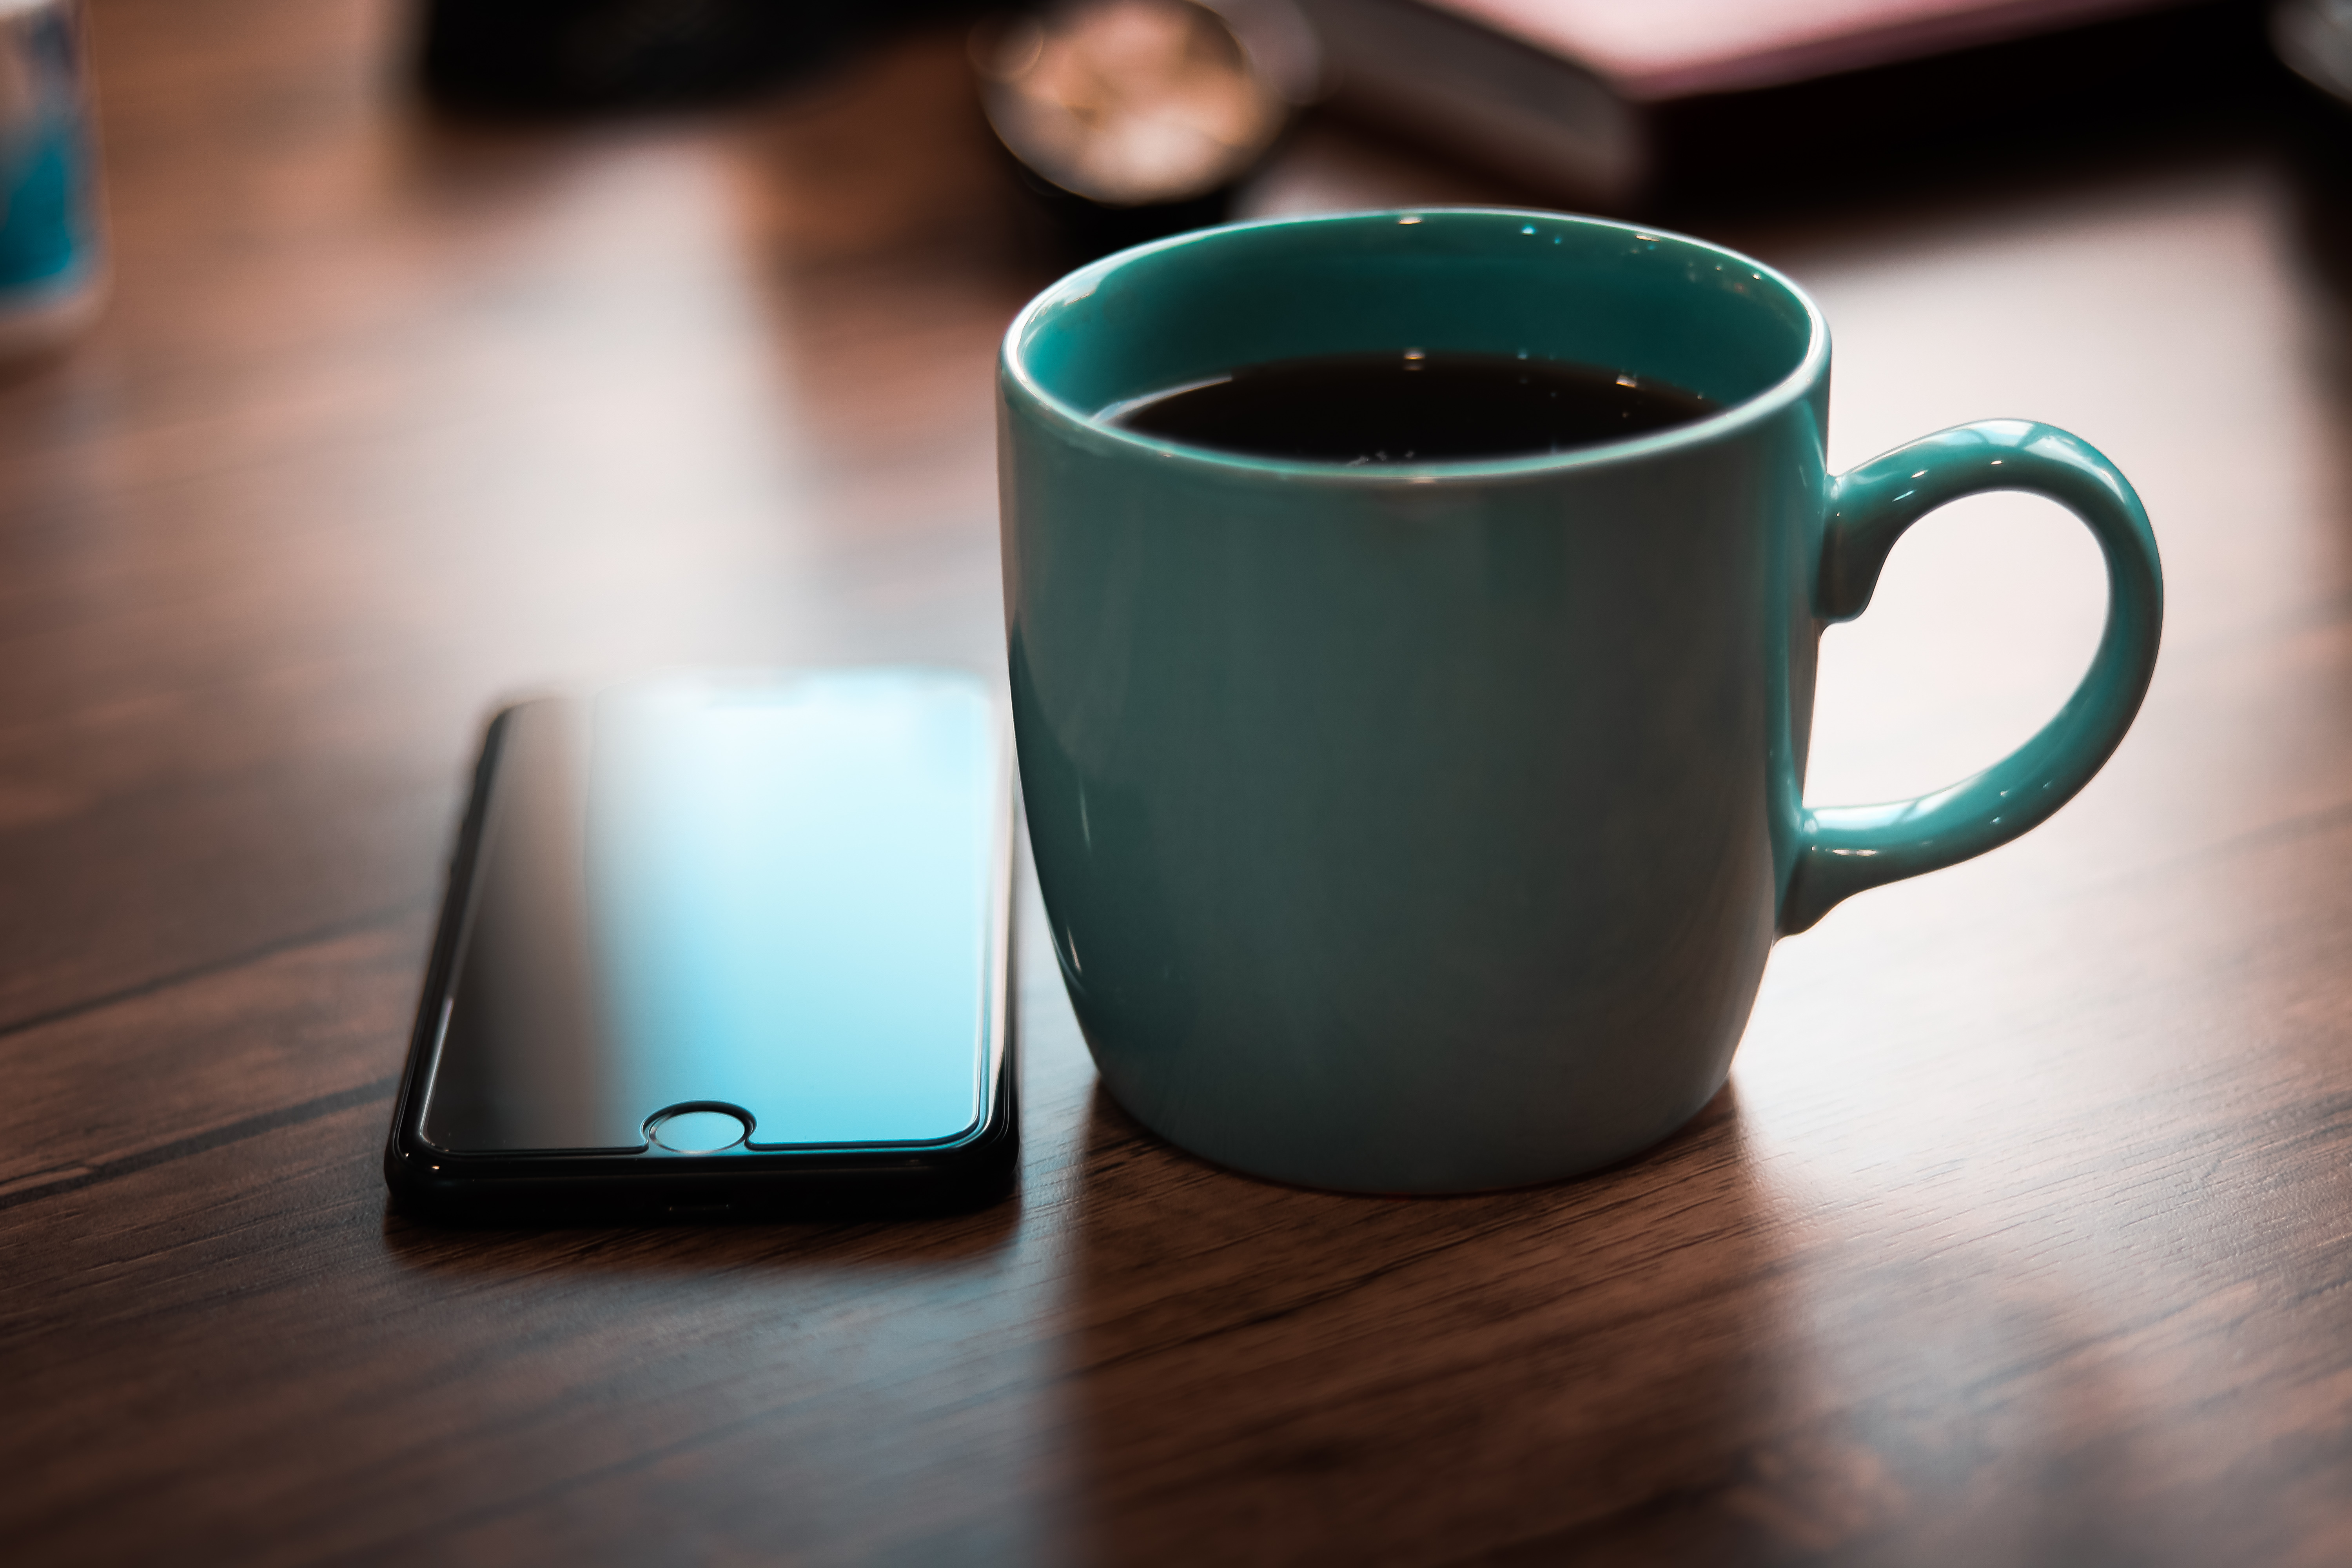 Close-Up Photo of Coffee cup Near Iphone